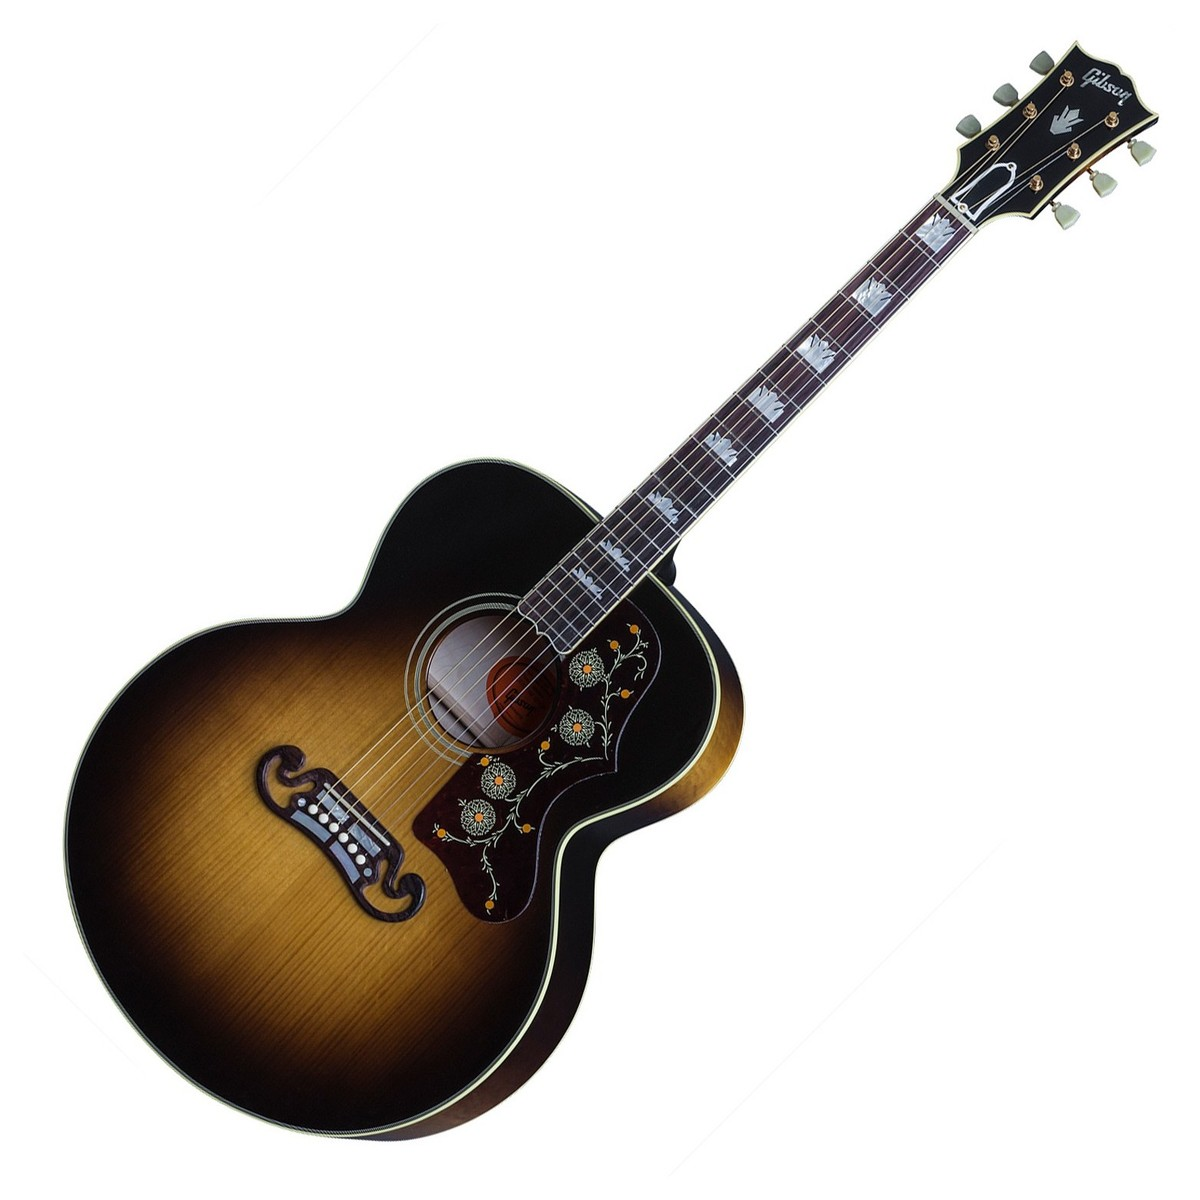 gibson sj 200 vintage acoustic guitar at. Black Bedroom Furniture Sets. Home Design Ideas